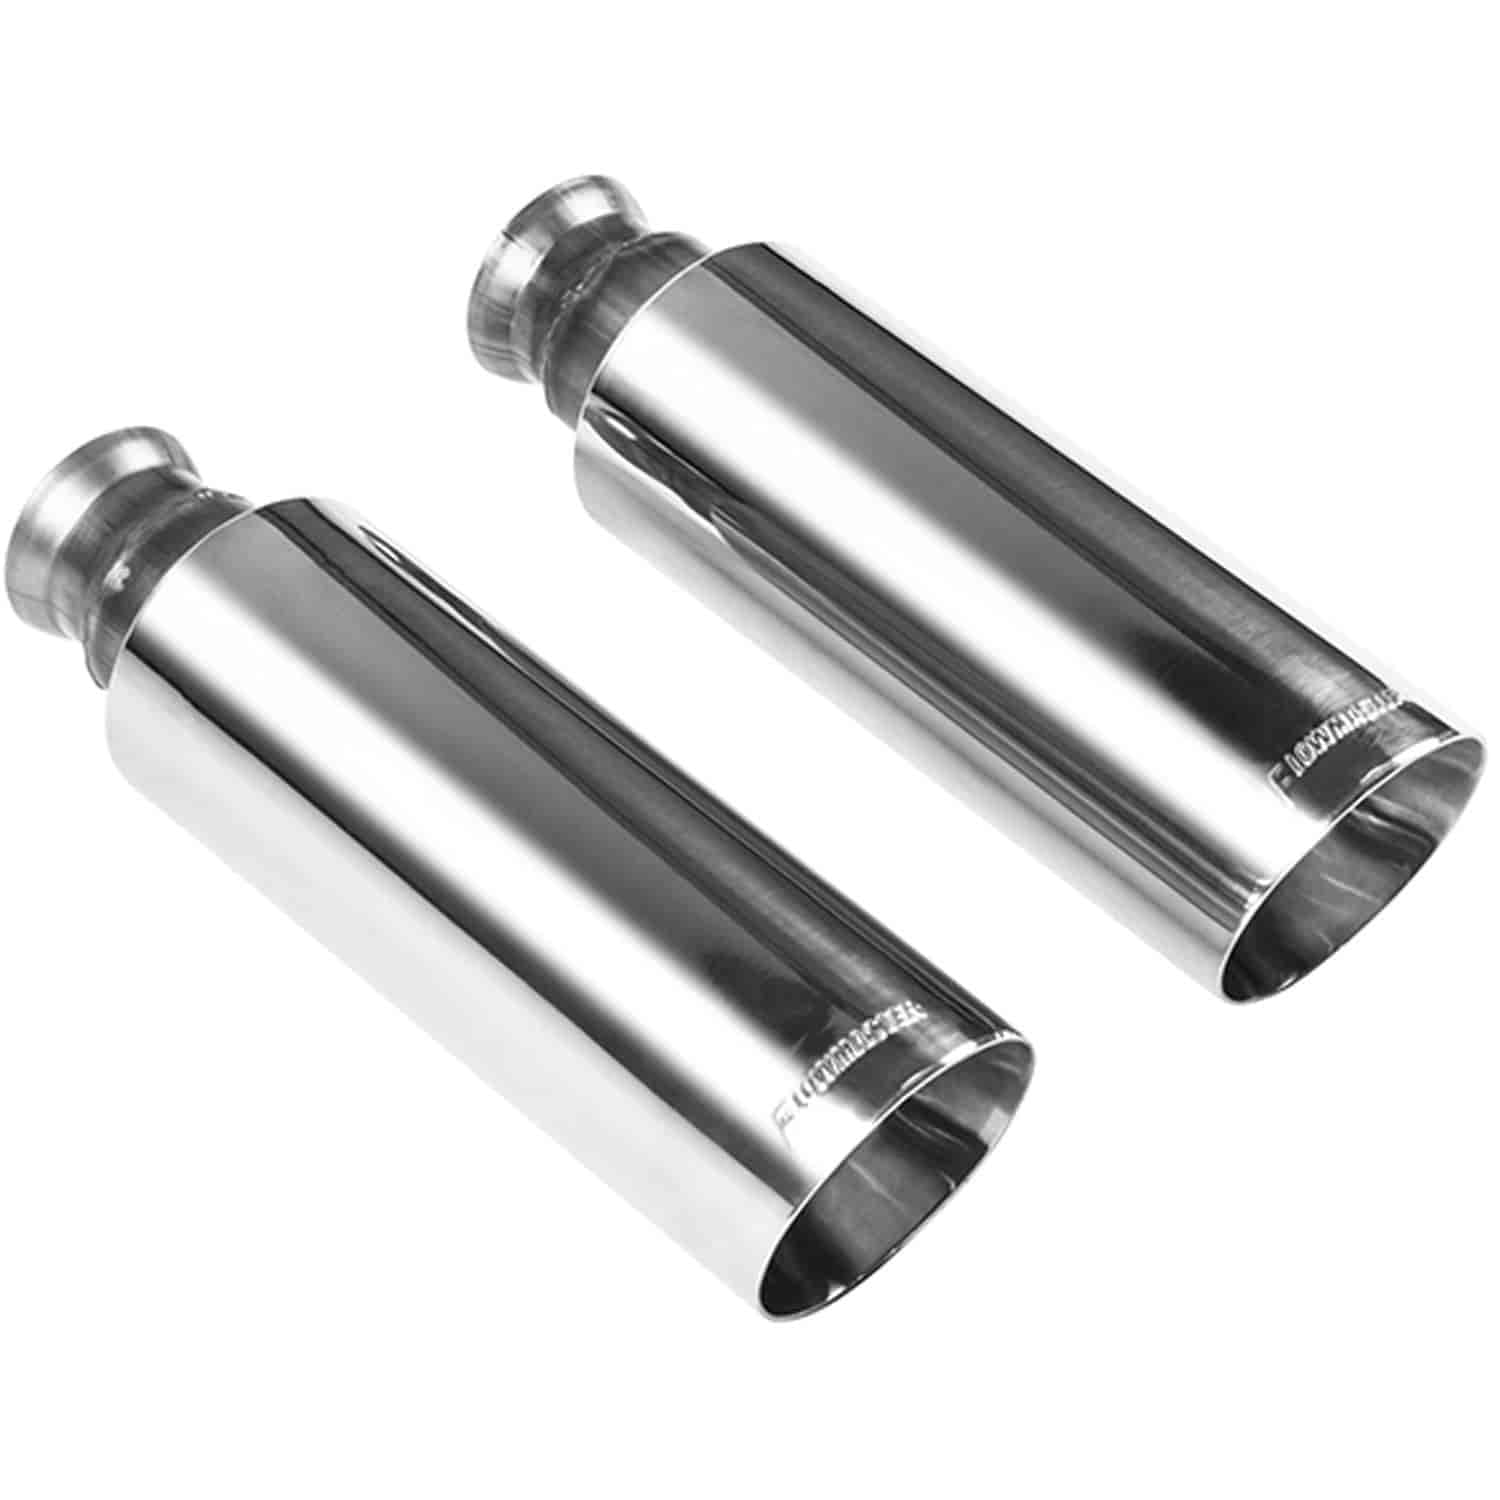 Flowmaster Polished Stainless Steel Exhaust Tips Clamp-On